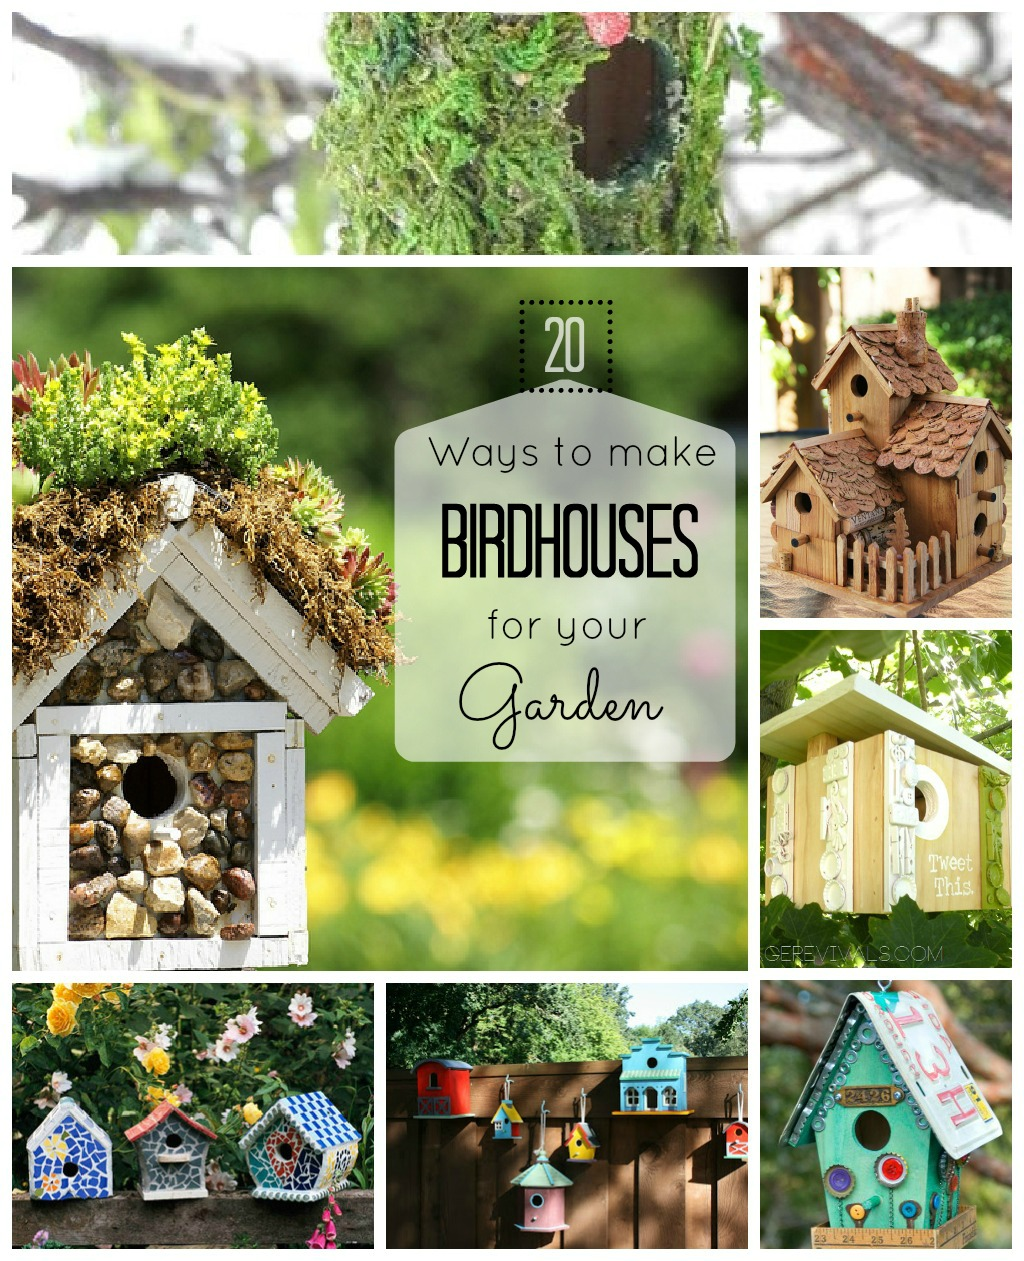 Make birdhouses for garden 20 ideas craftionary for Easy birdhouse ideas